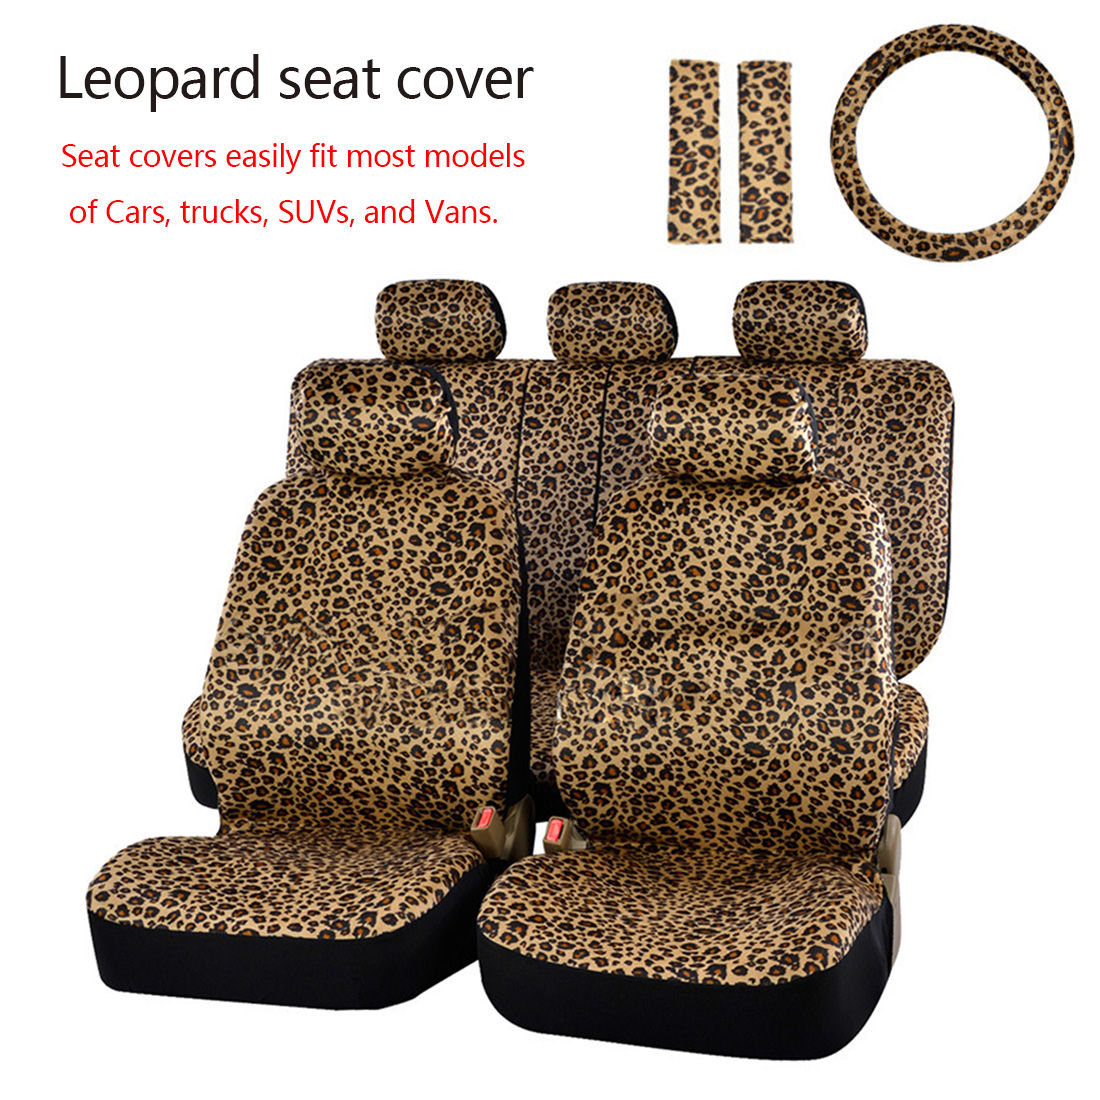 Dewtreetali Car Seat Cover Front Rear Car Seat Protector Universal Leopard Print Car Styling Interior Accessories for VW Ford